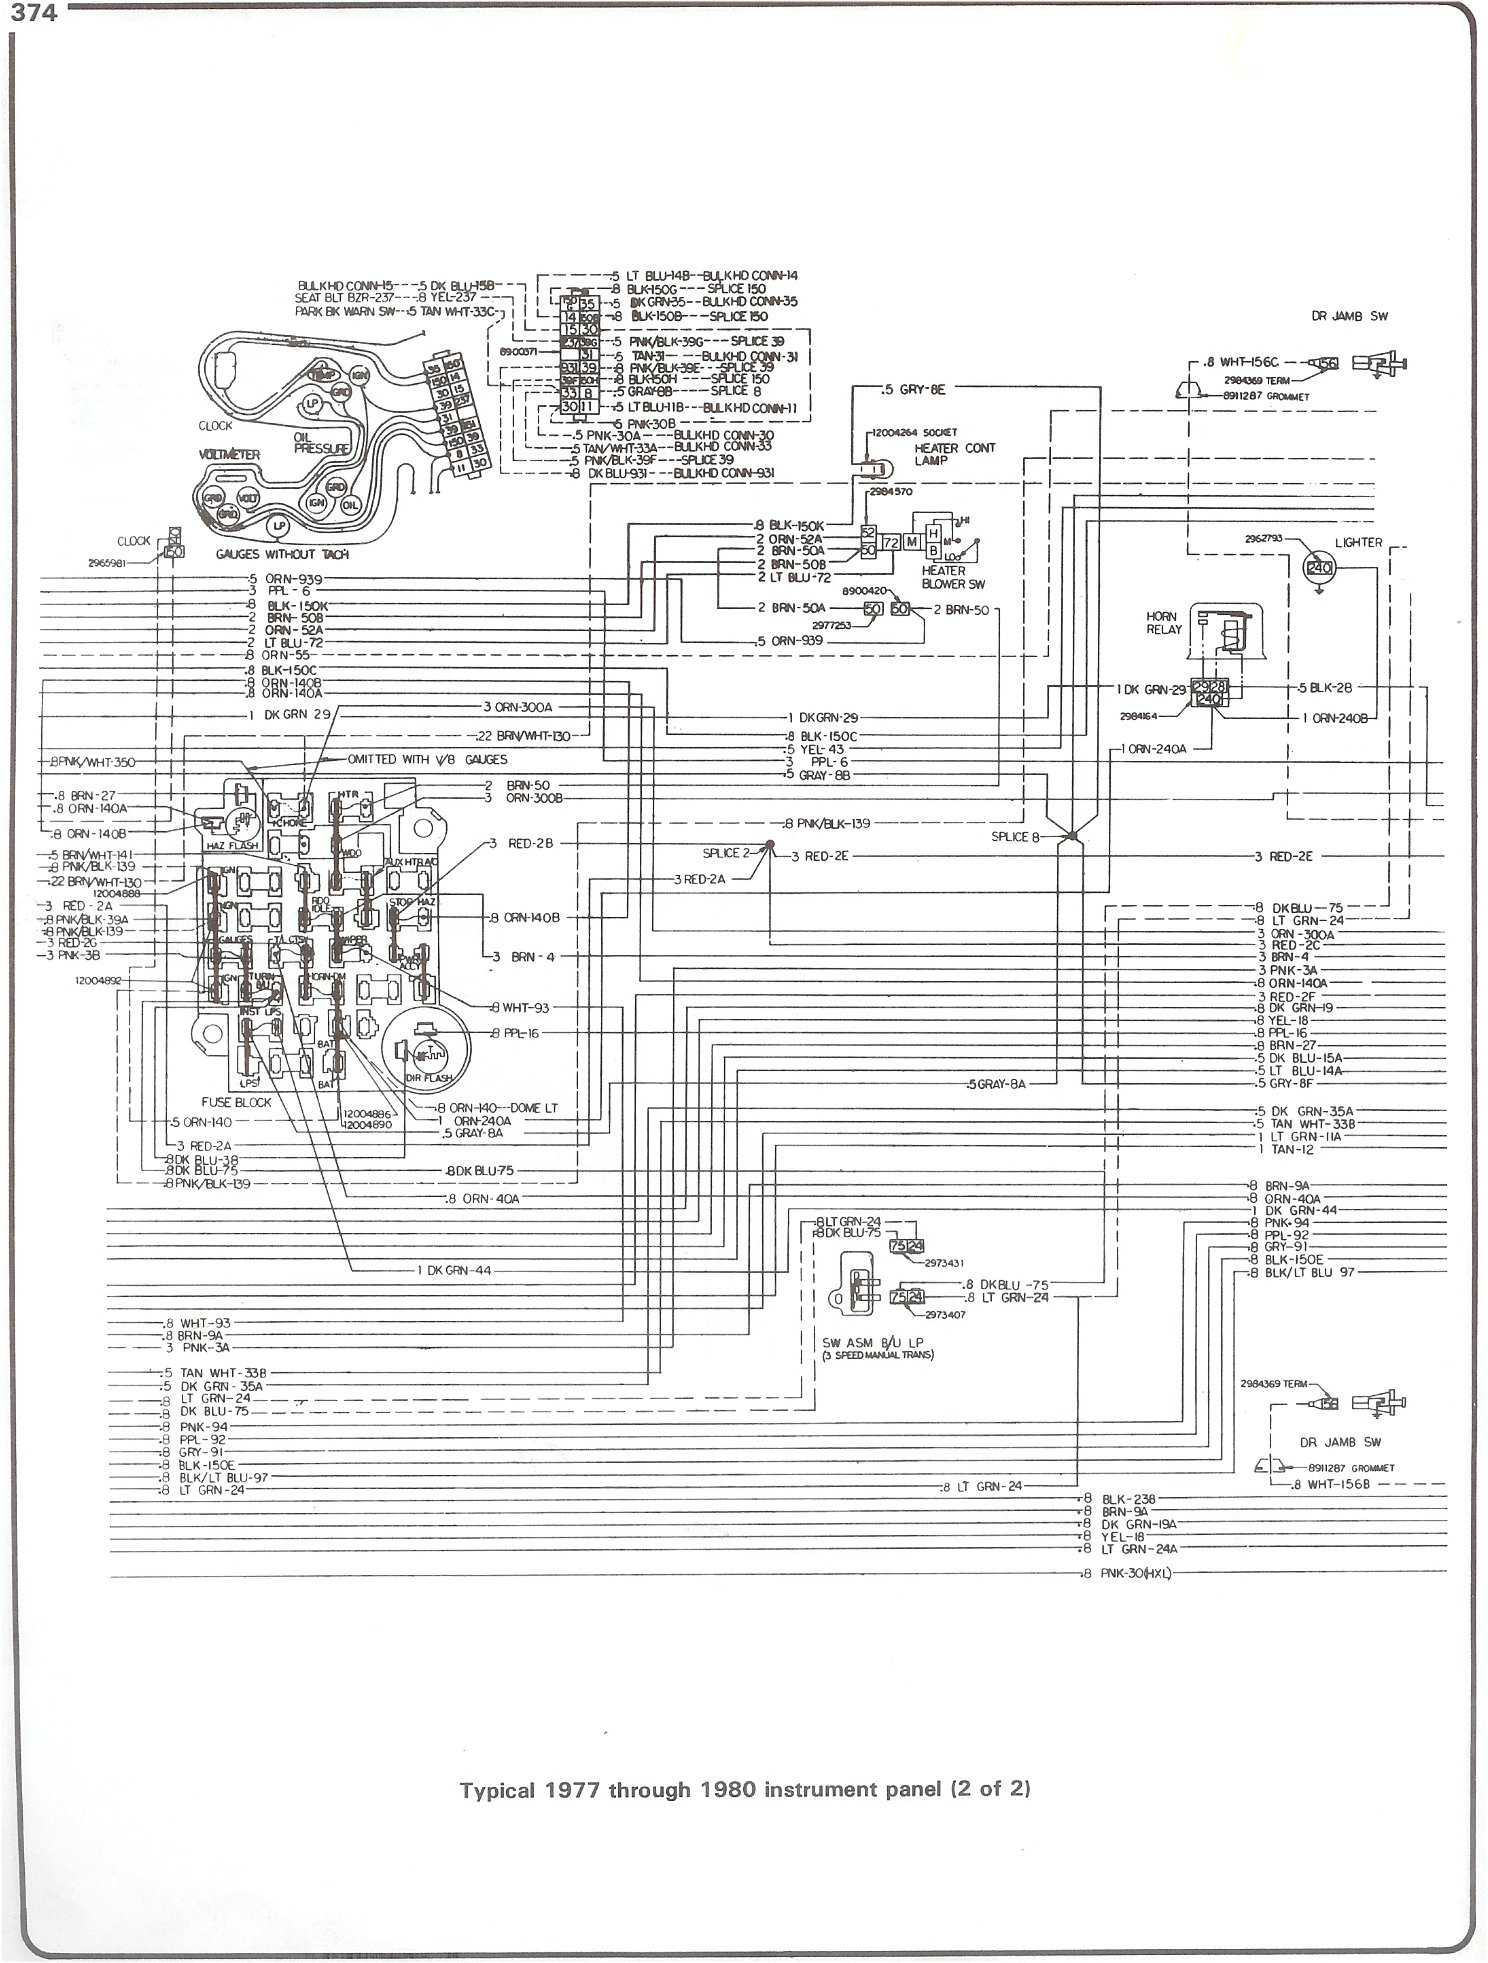 complete 73 87 wiring diagrams rh forum 73 87chevytrucks com 2005 GMC Truck Wiring Diagram 1970 GMC Truck Wiring Diagram